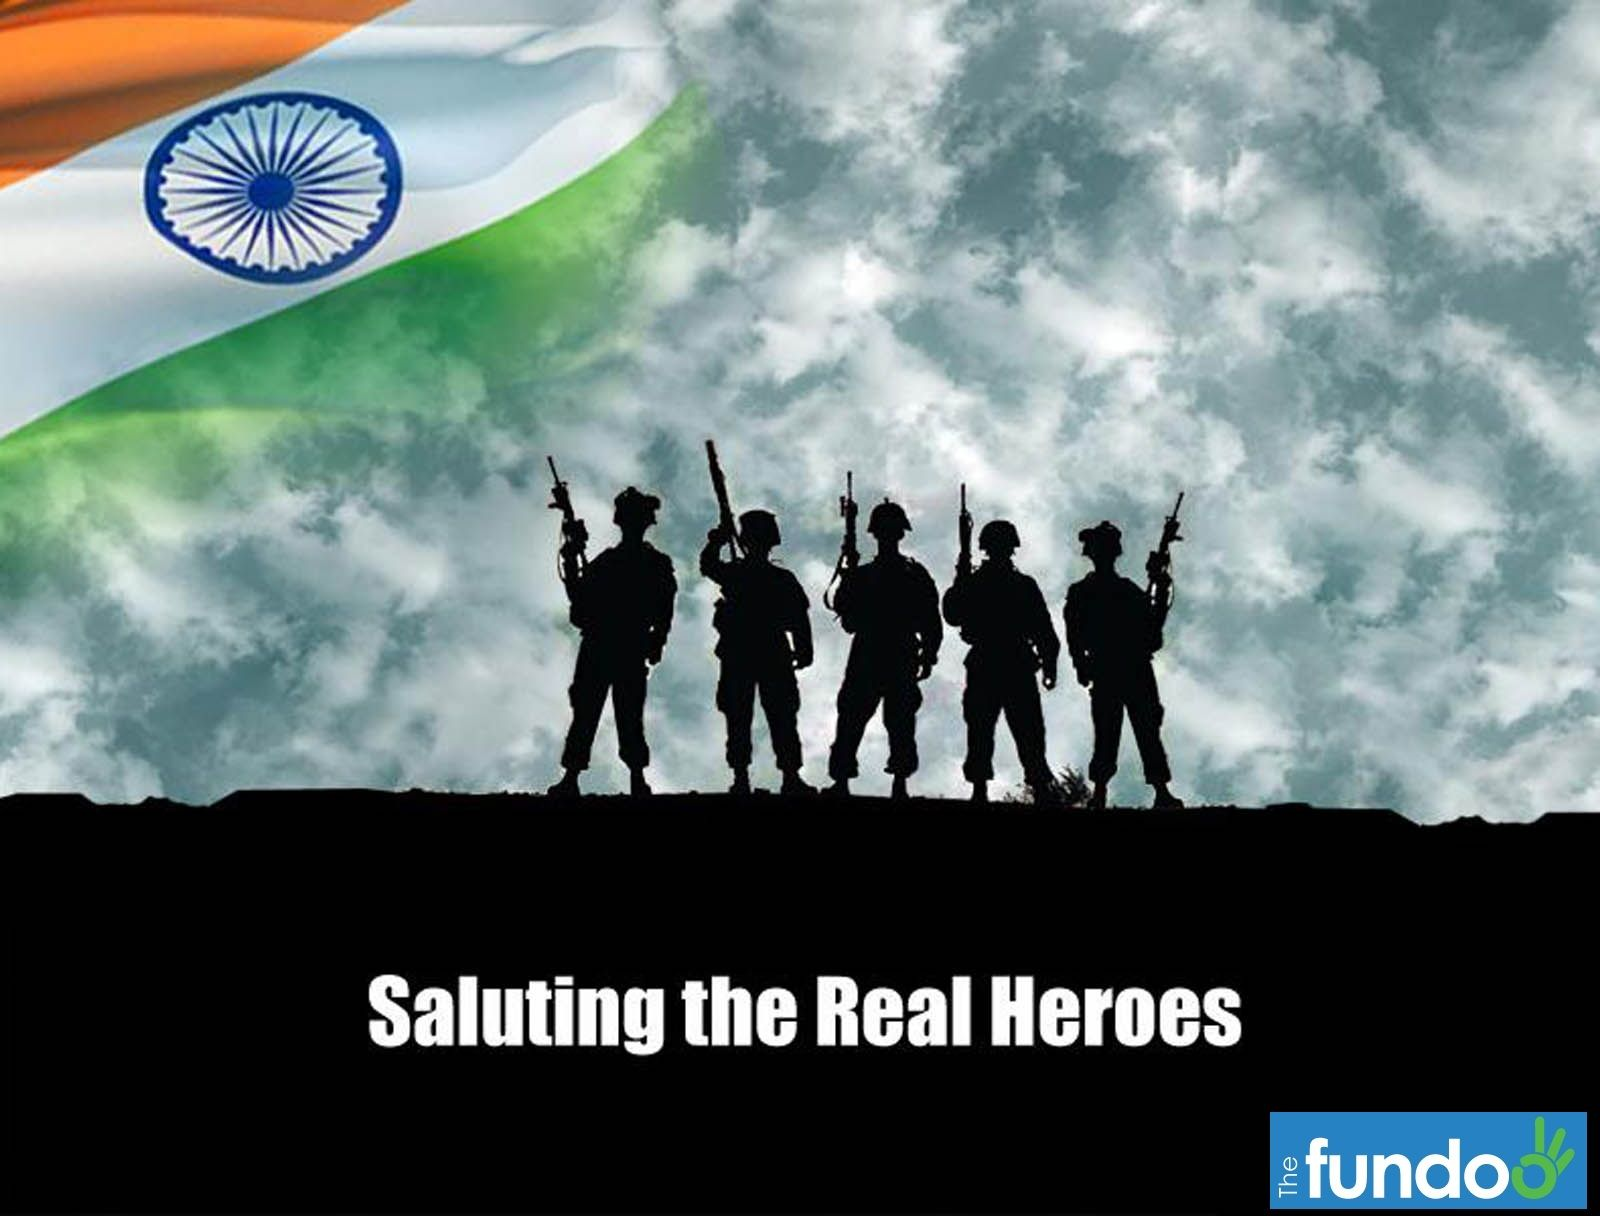 we salute to the real heroes of on the occasion of we salute to the real heroes of on the occasion of independence day